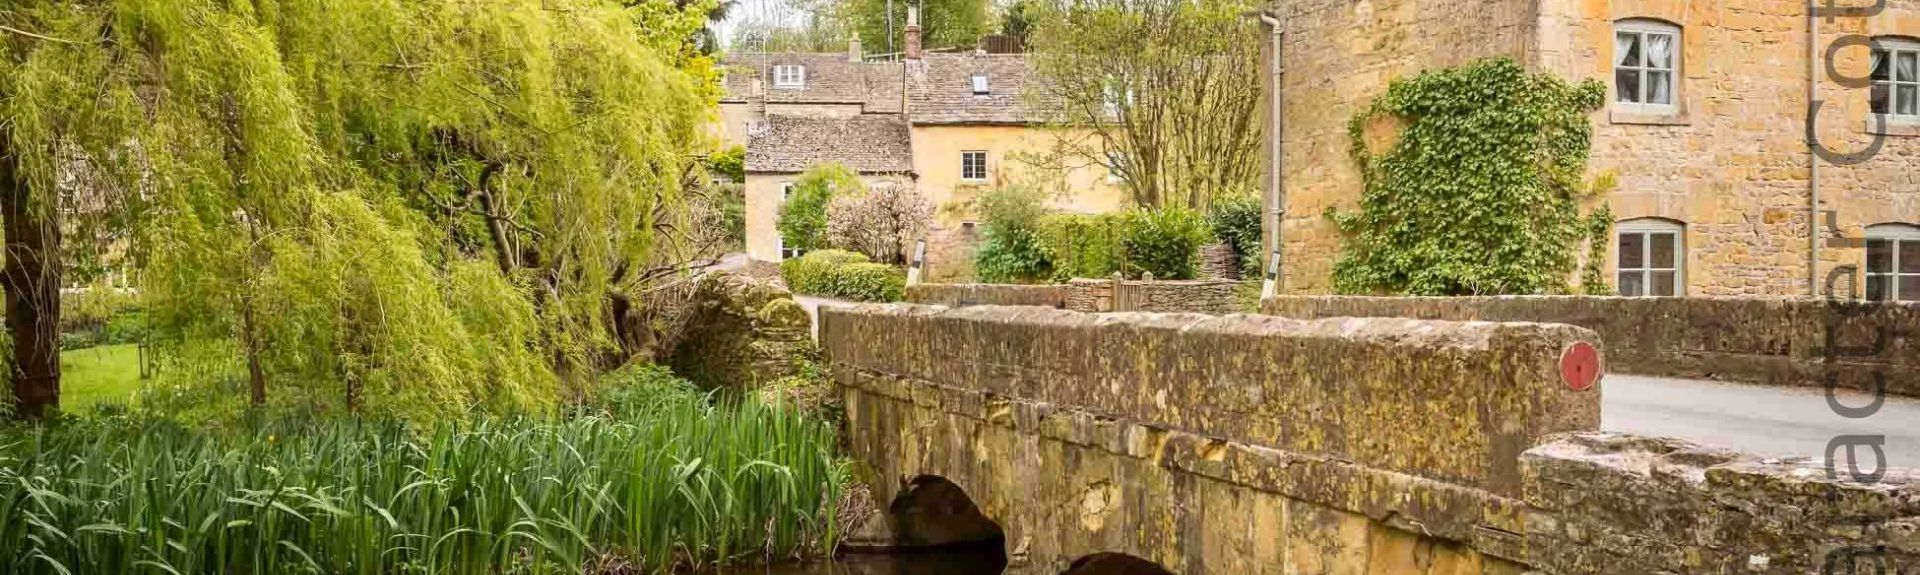 Cotswold District, Gloucestershire, UK